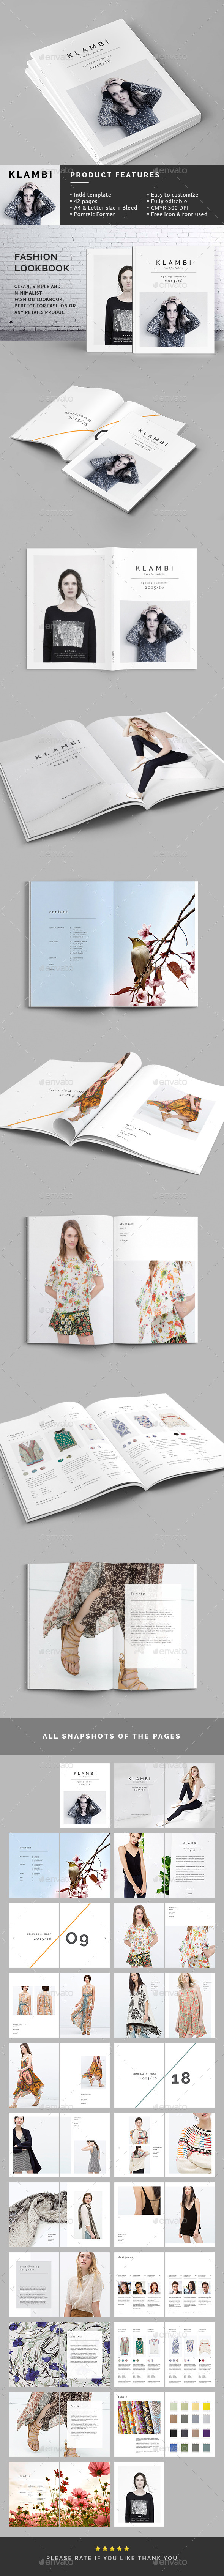 GraphicRiver Fashion Lookbook 11401509